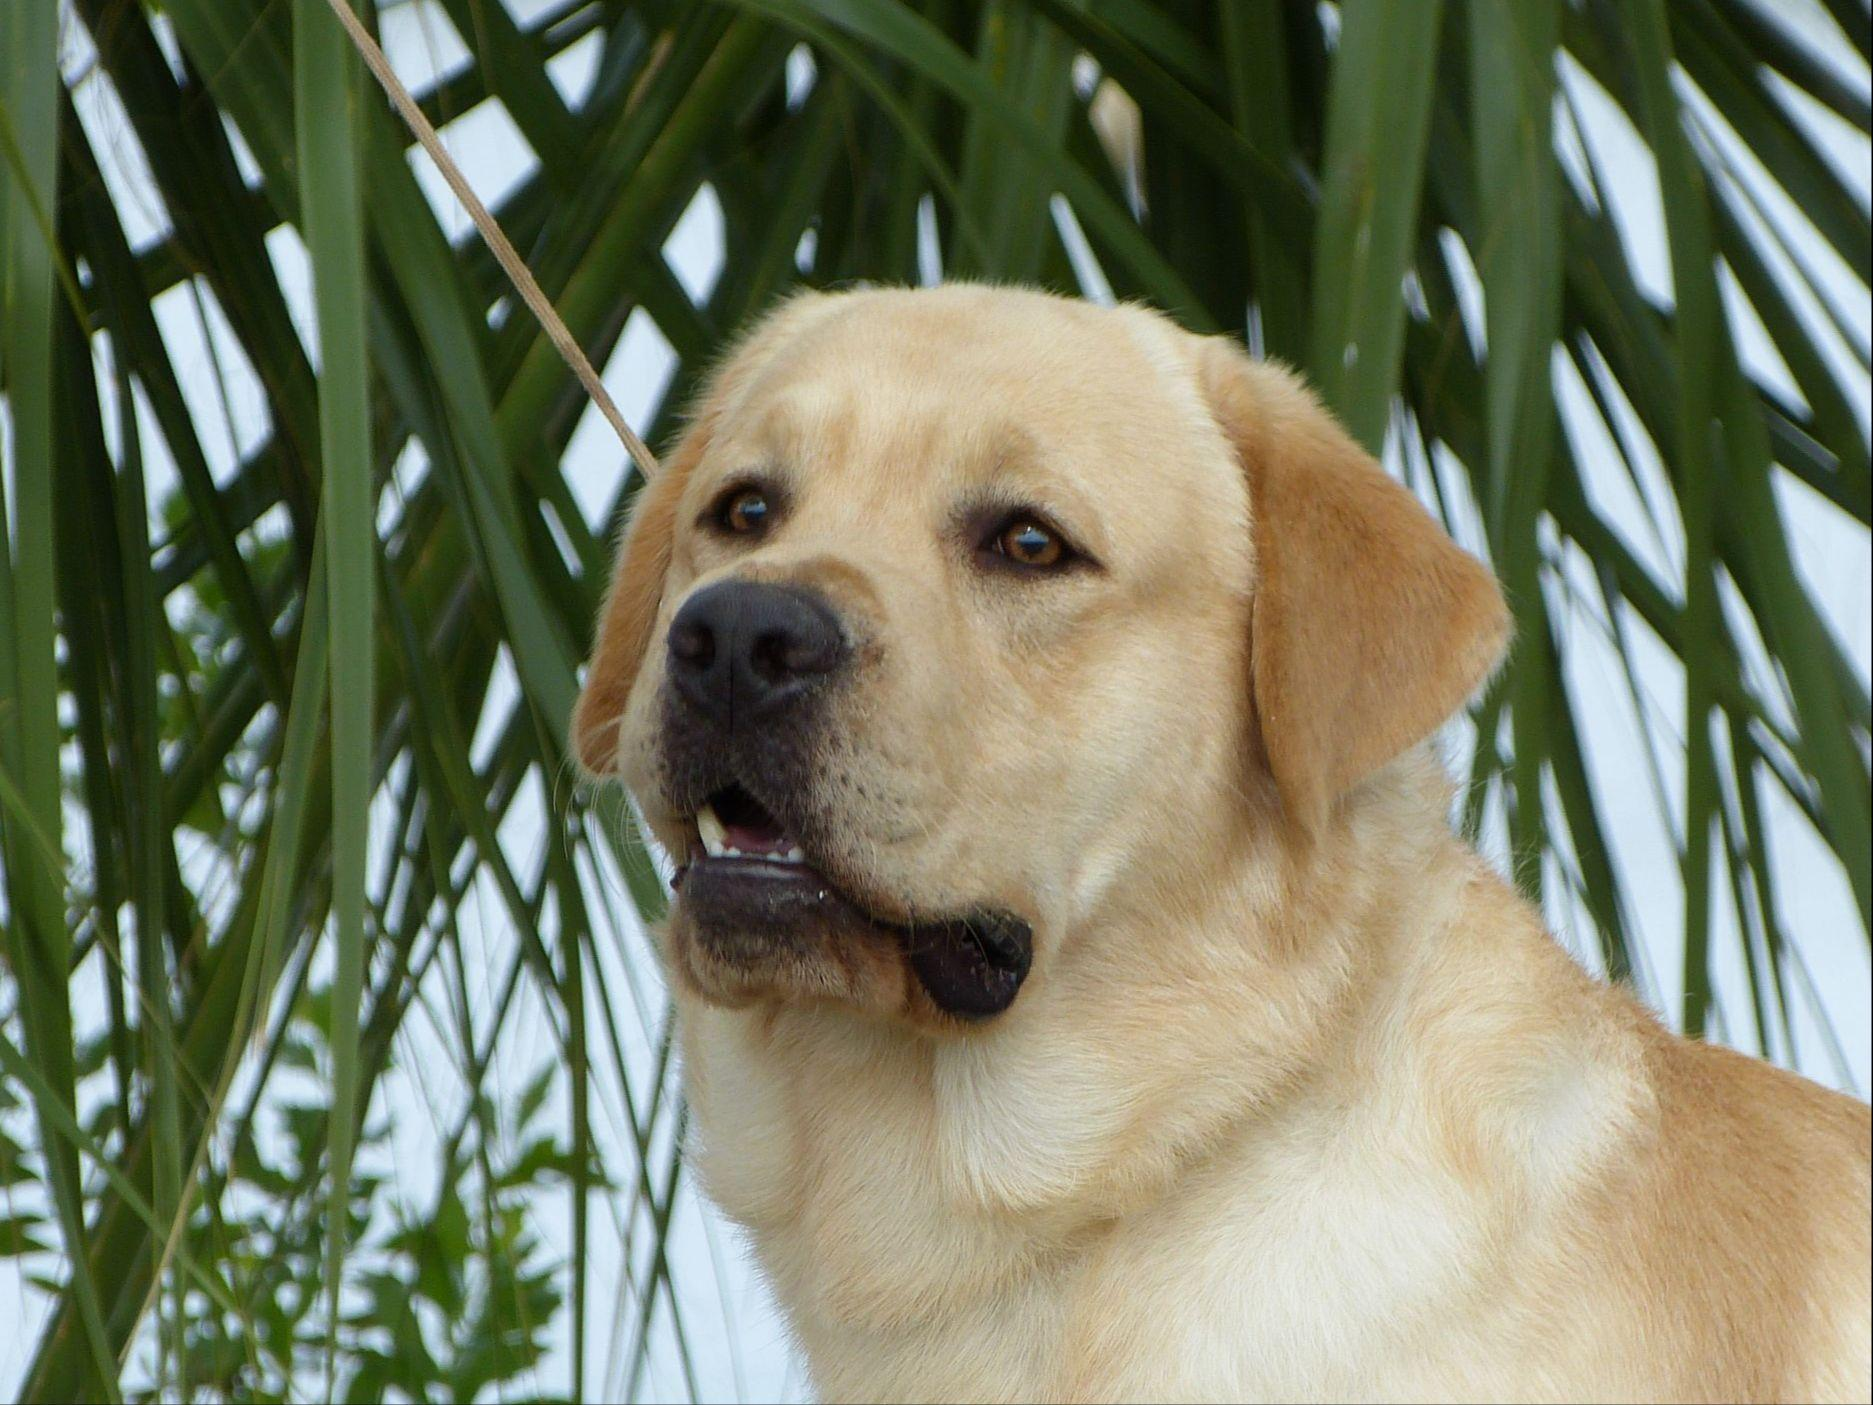 Grandquest Labradors - Puppies For Sale